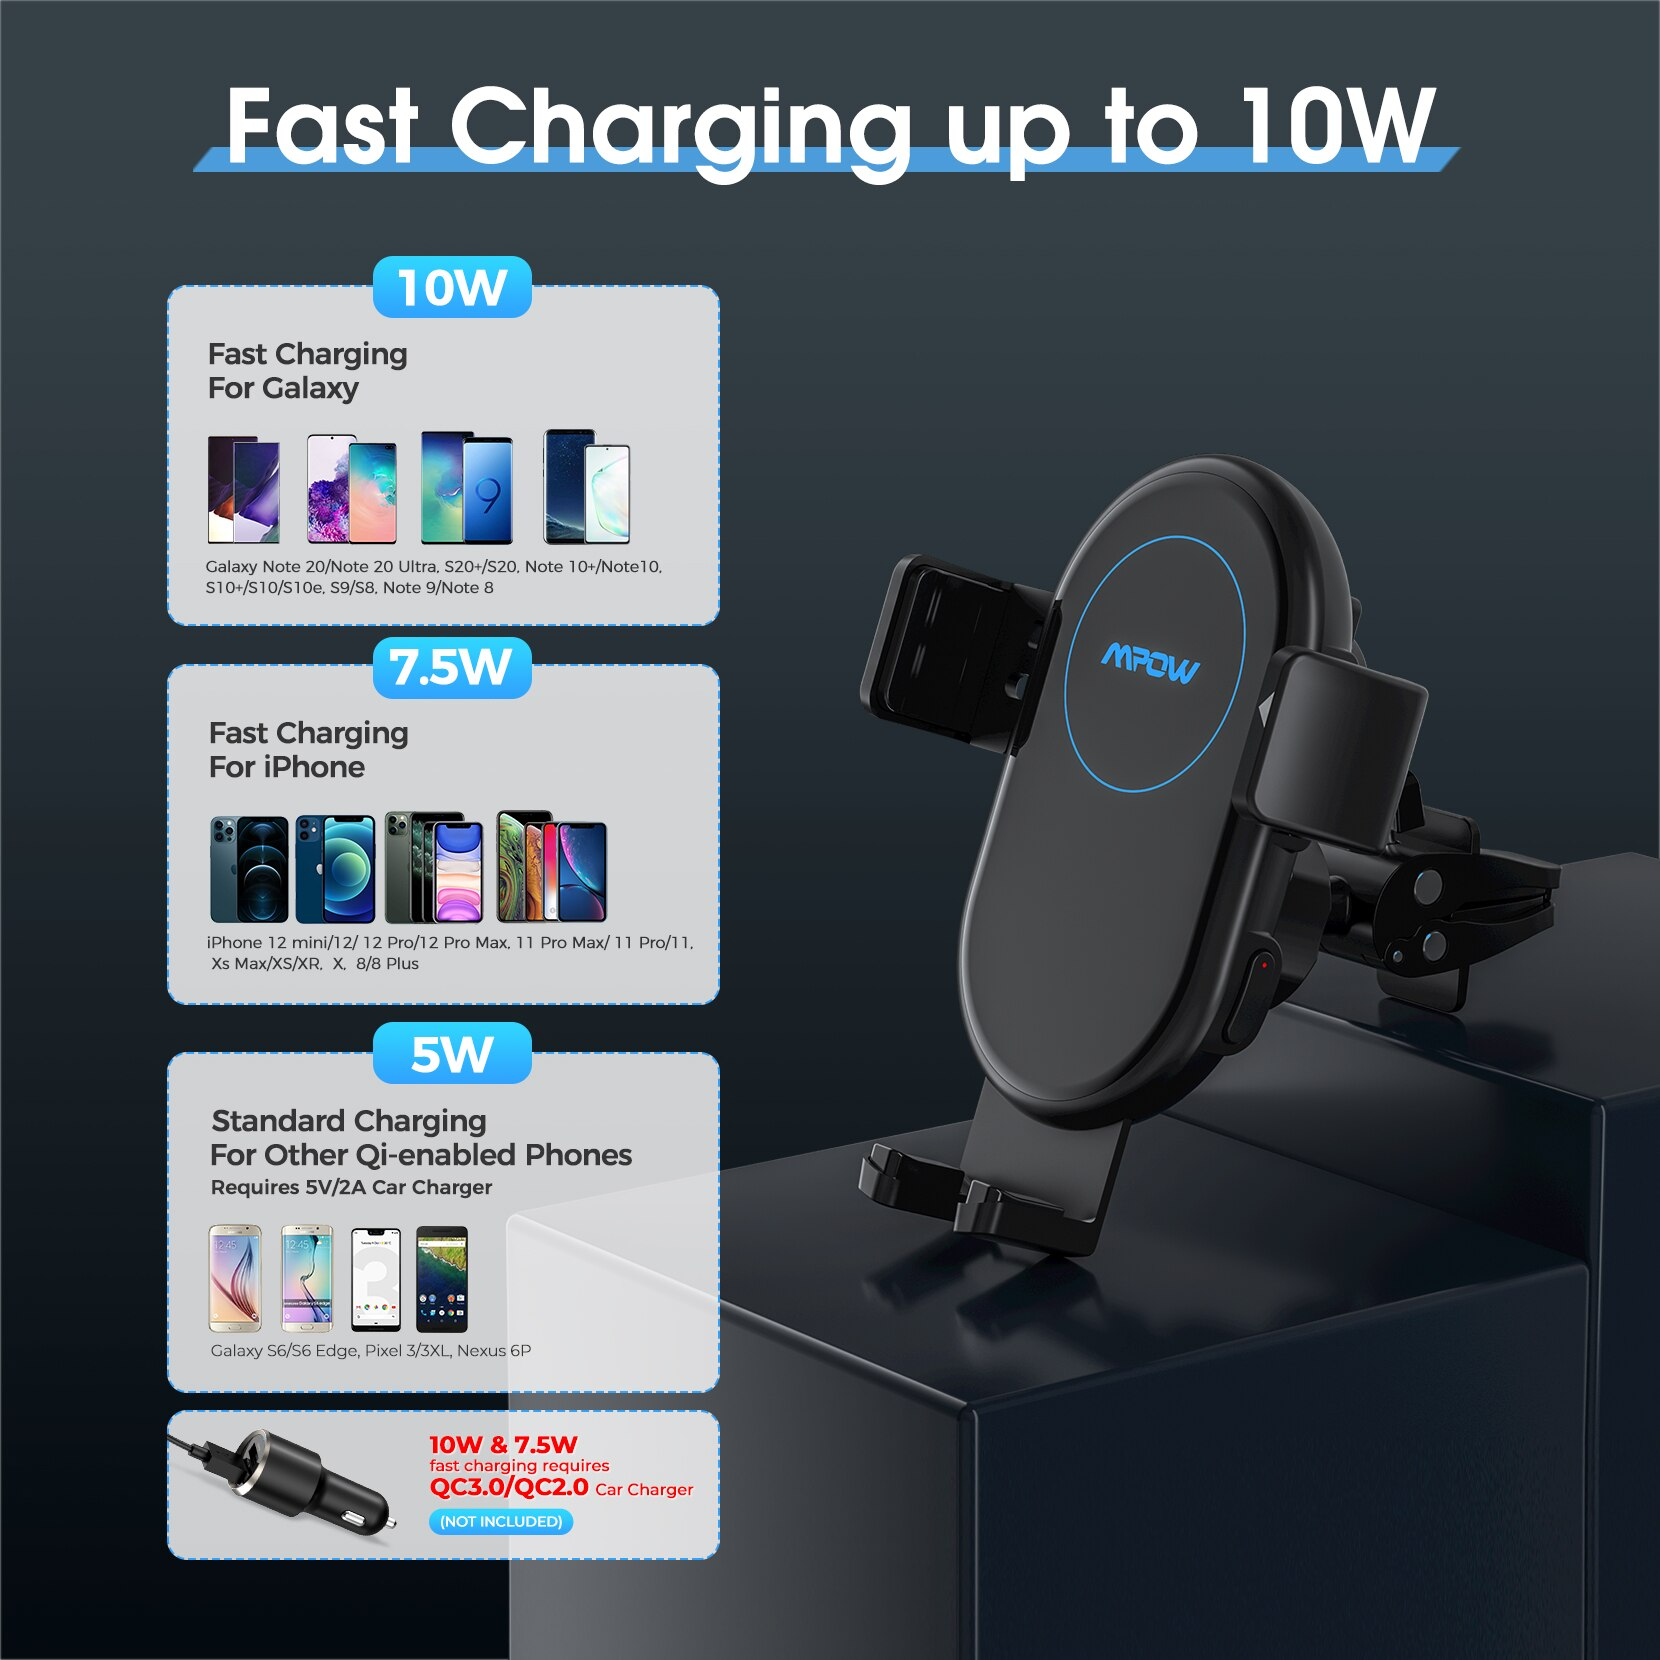 H7ae7f222506c445db6726d8685a7d554D - Mpow Wireless Car Charger Mount 10W Auto-clamping Qi Fast Charging Car Mount with Power Storage Car Phone Holder for iPhone 12